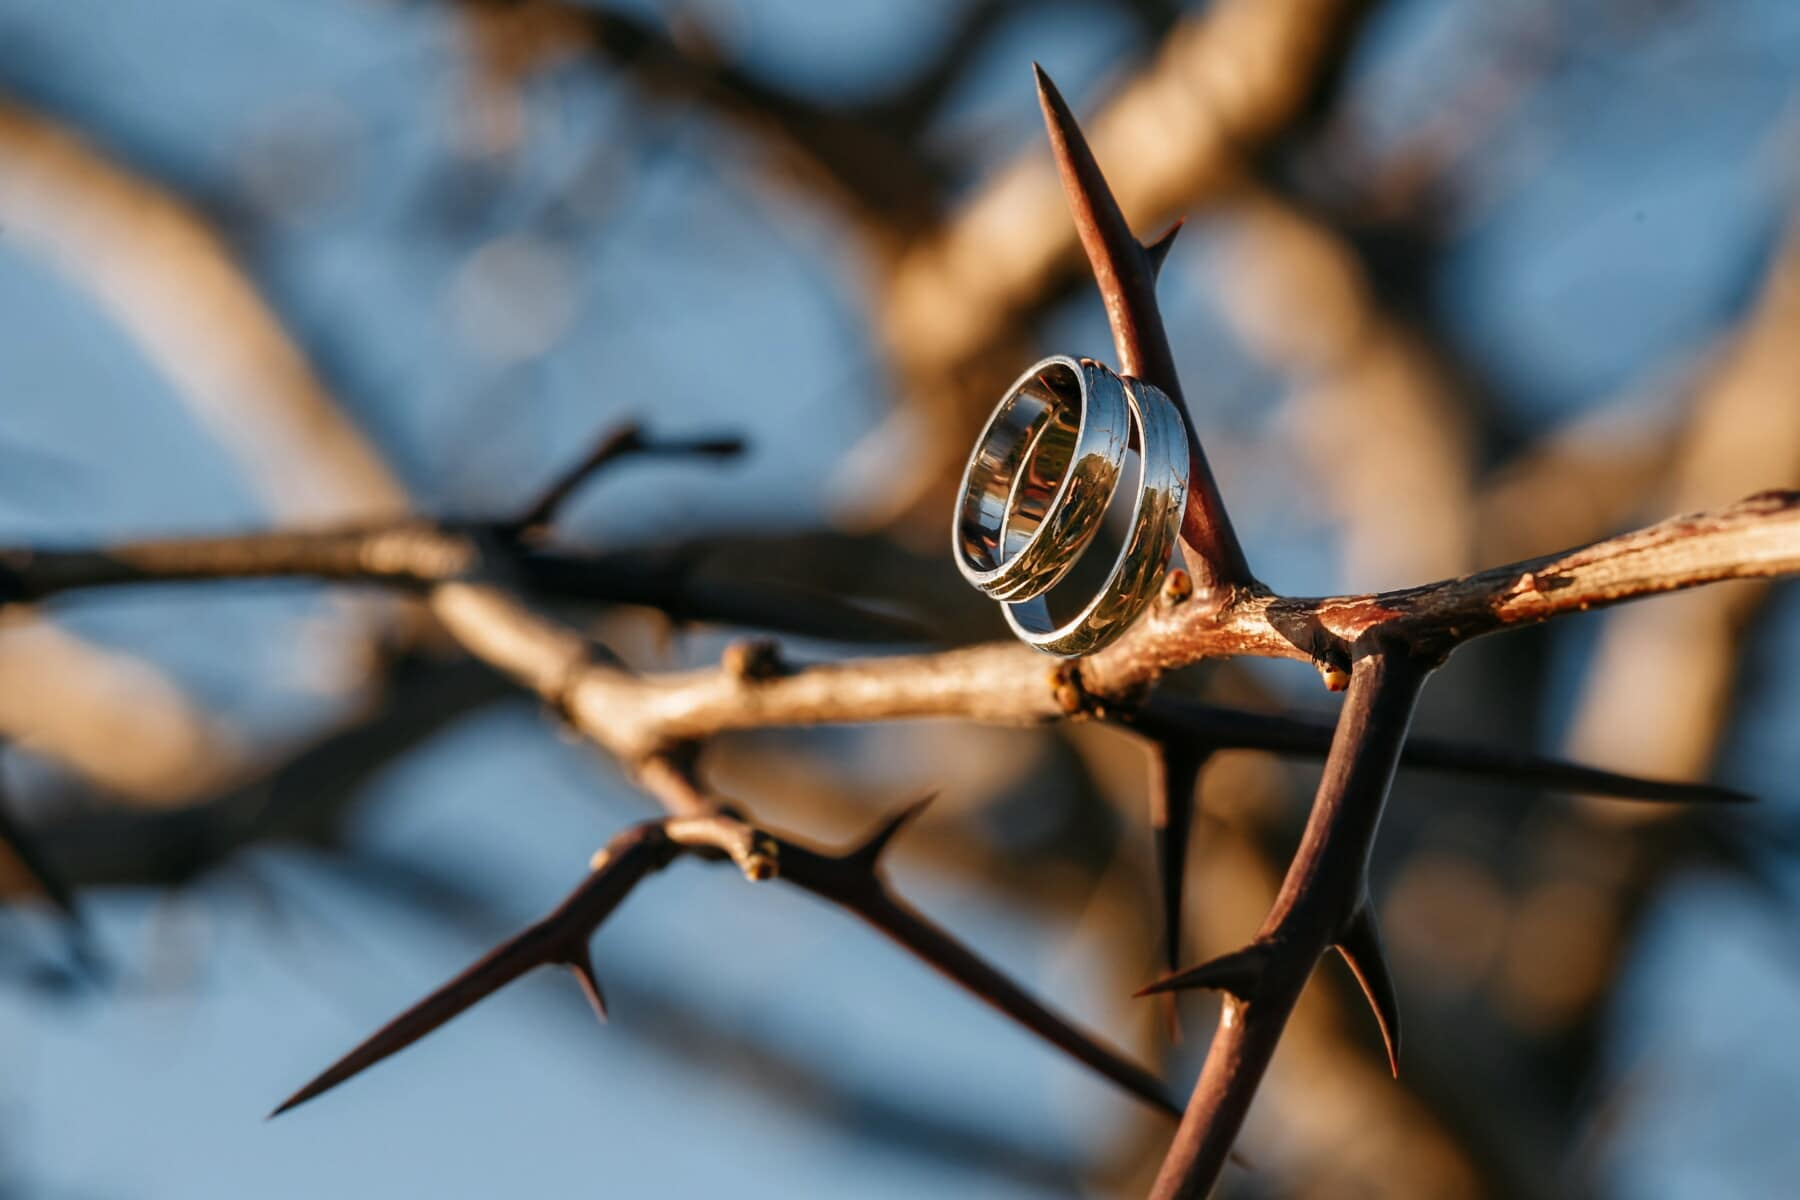 sharp, thorn, branchlet, wedding ring, gold, golden glow, rings, blur, outdoors, wood